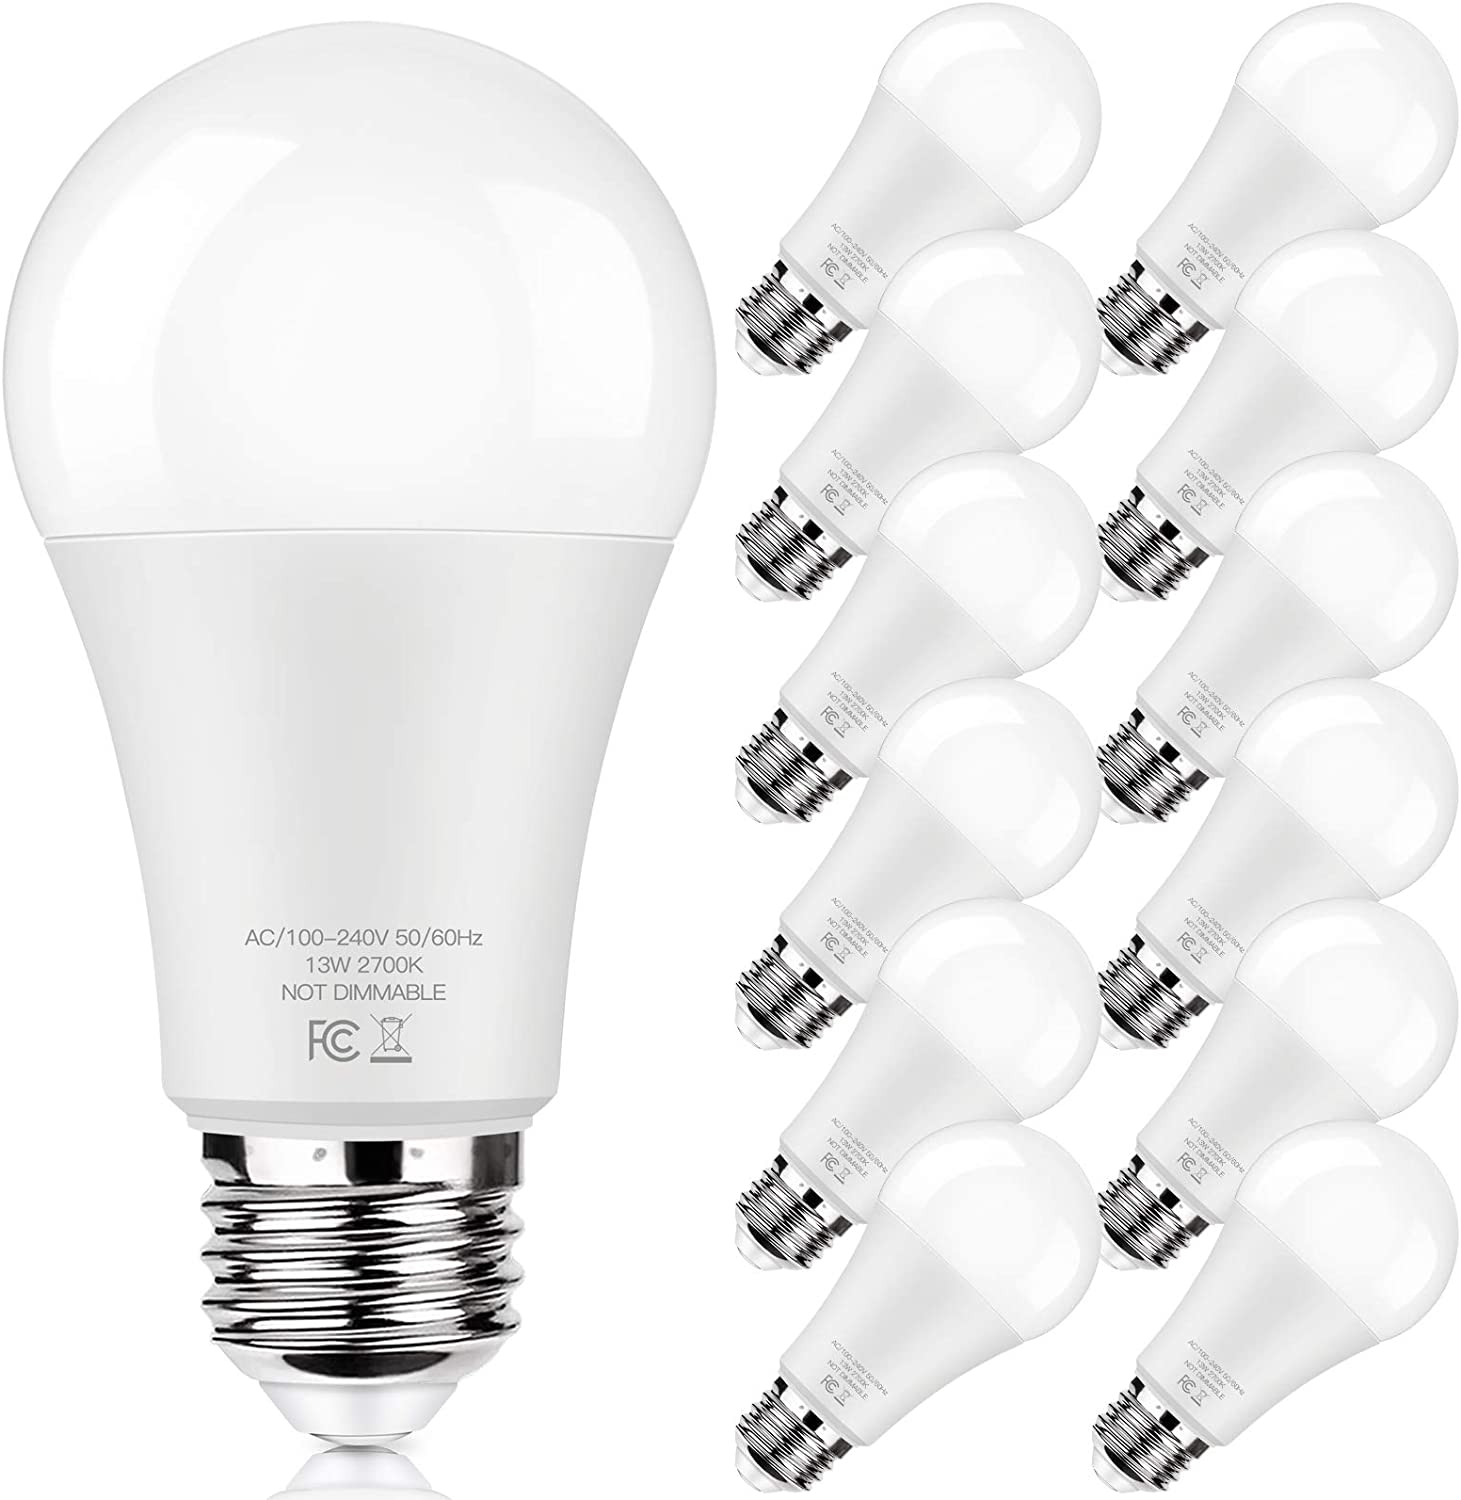 LED Light Bulbs 100W Equivalent 1500 Lumens, A19 13W 2700K Warm White Non-Dimmable, Super Bright No Flicker Standard E26 Edison Screw Bulbs for Home, Bedroom, Office Lamp, 12-Pack